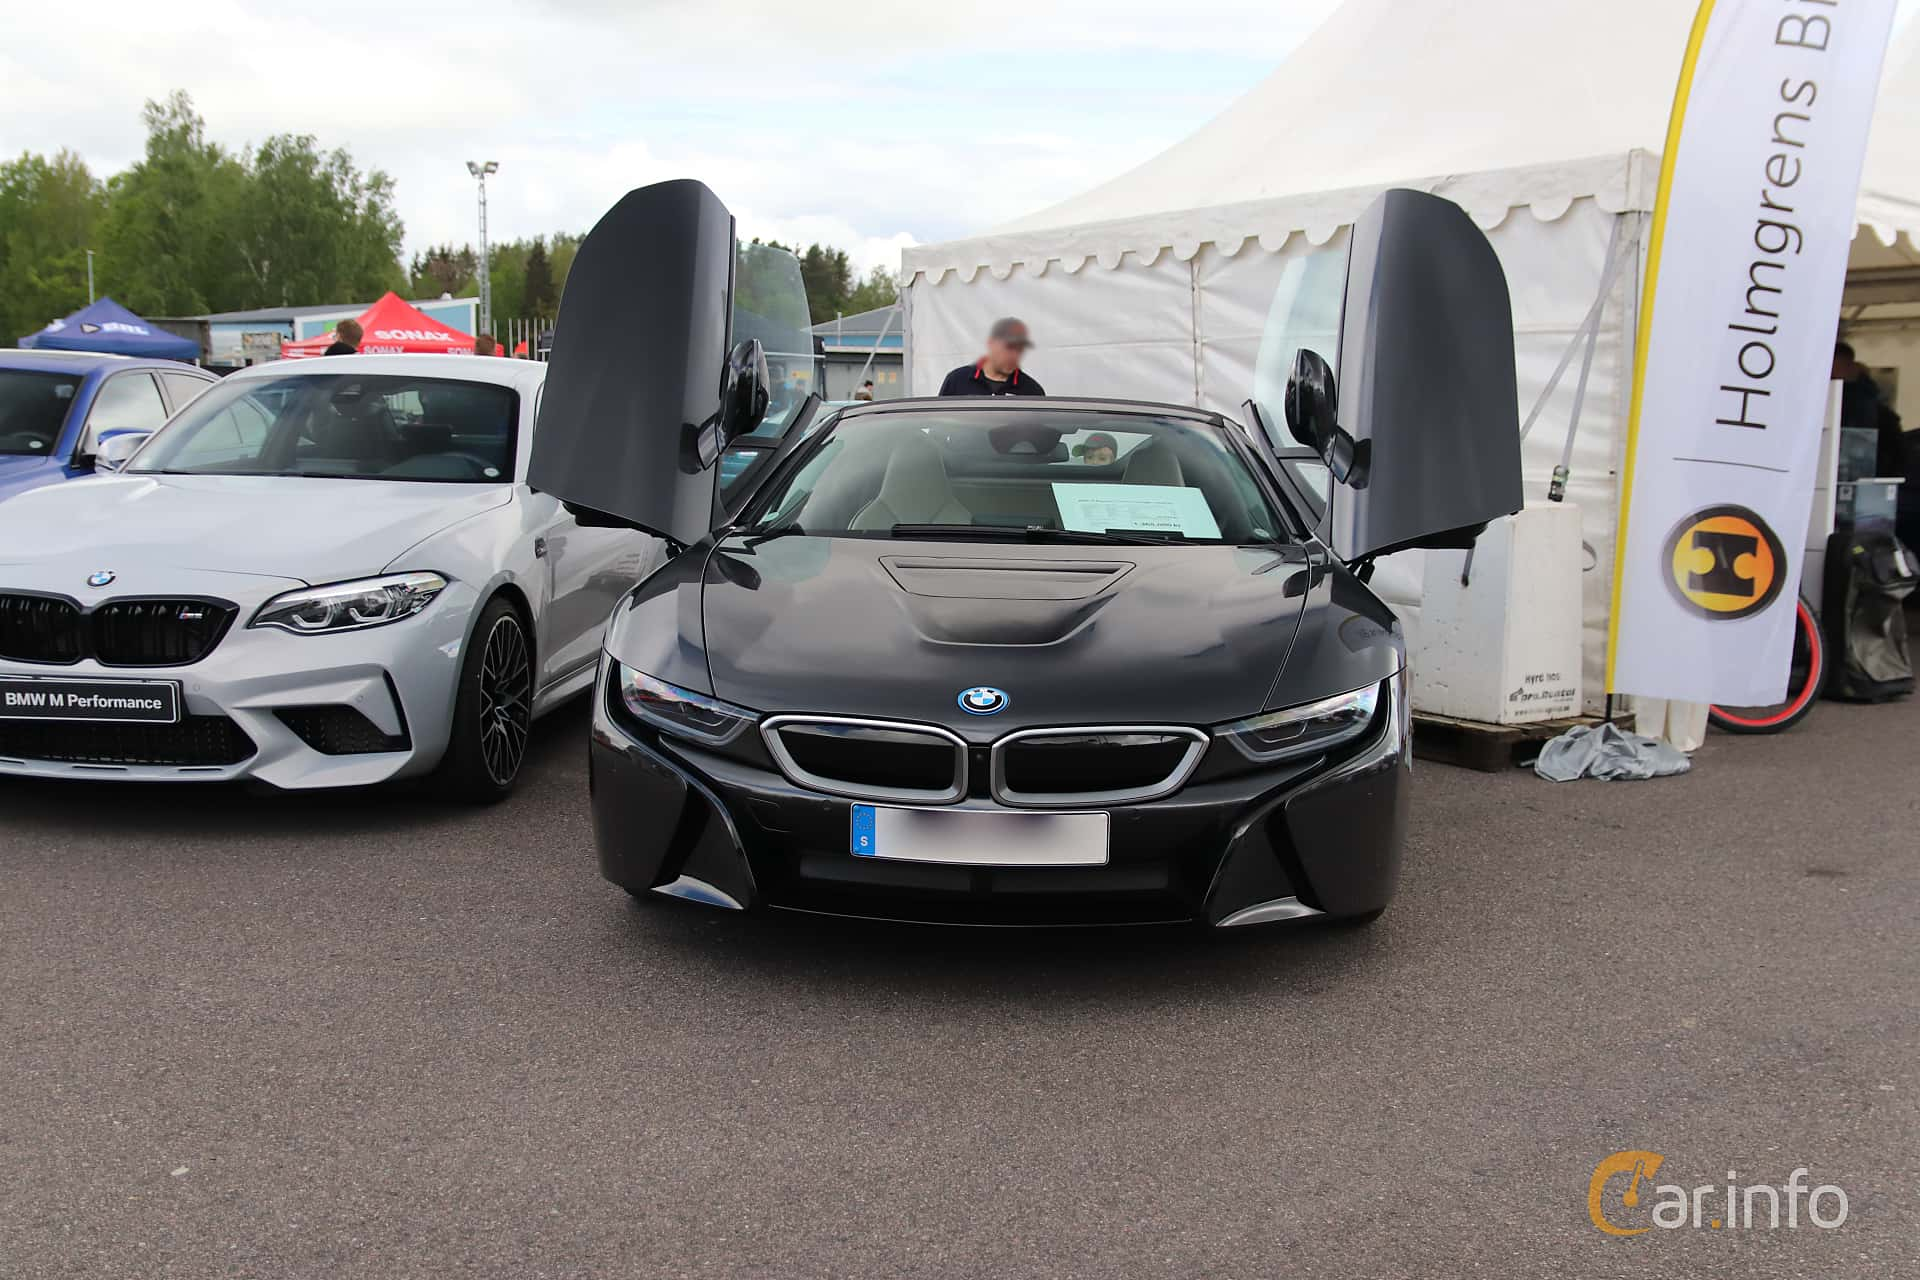 BMW i8 Roadster 1.5 + 11.6 kWh Steptronic, 374hp, 2019 at Bimmers of Sweden @ Mantorp 2019